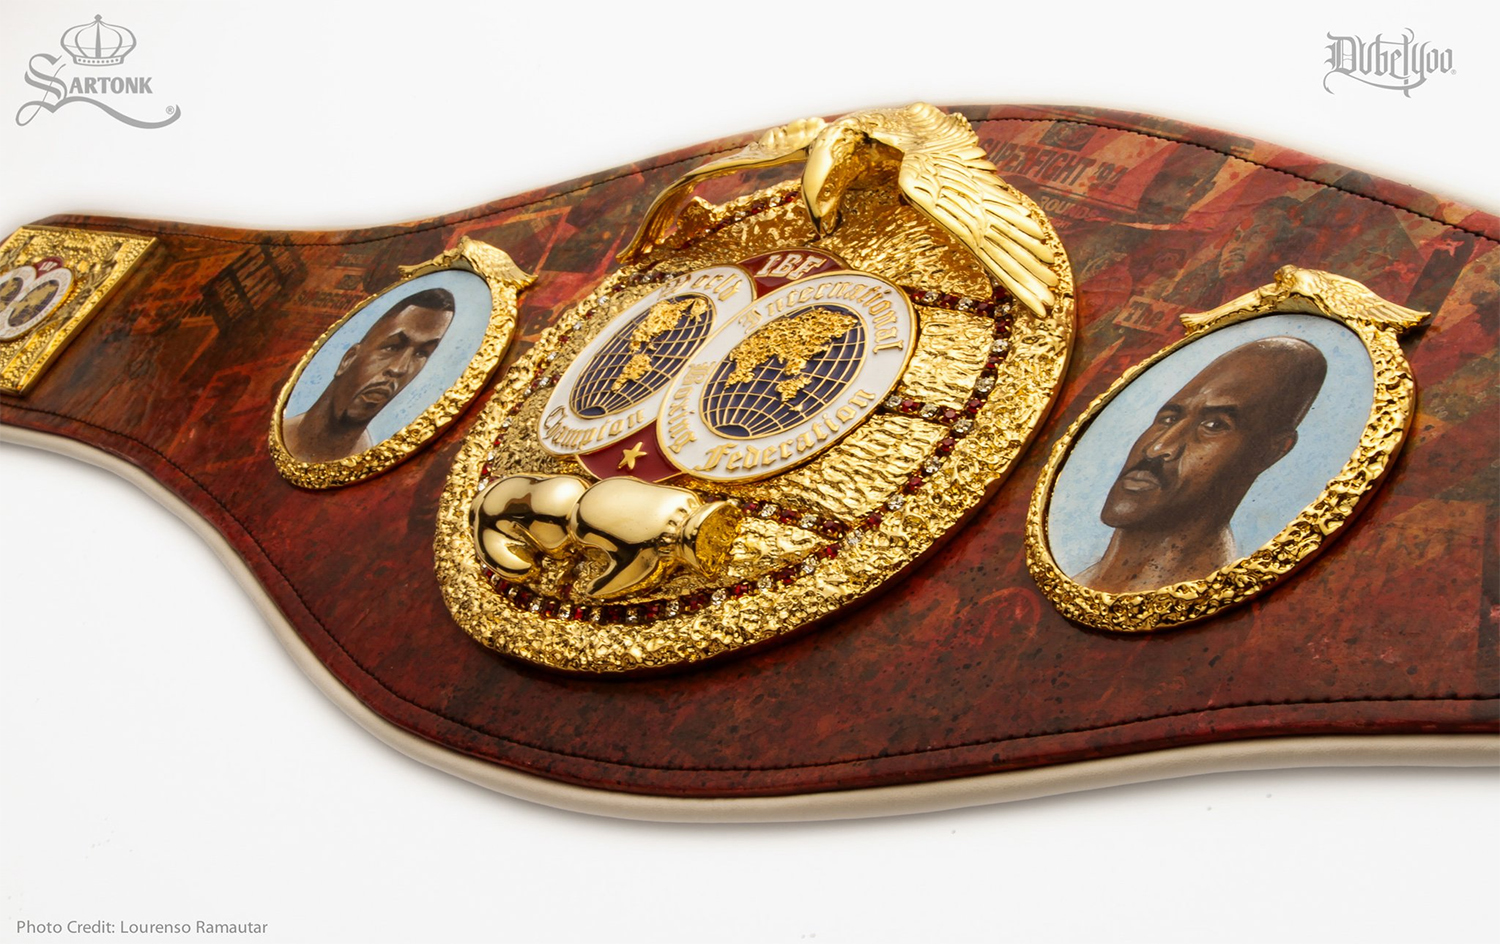 Official IBF Championship Belt Collaboration with Sartonk and Dubelyoo